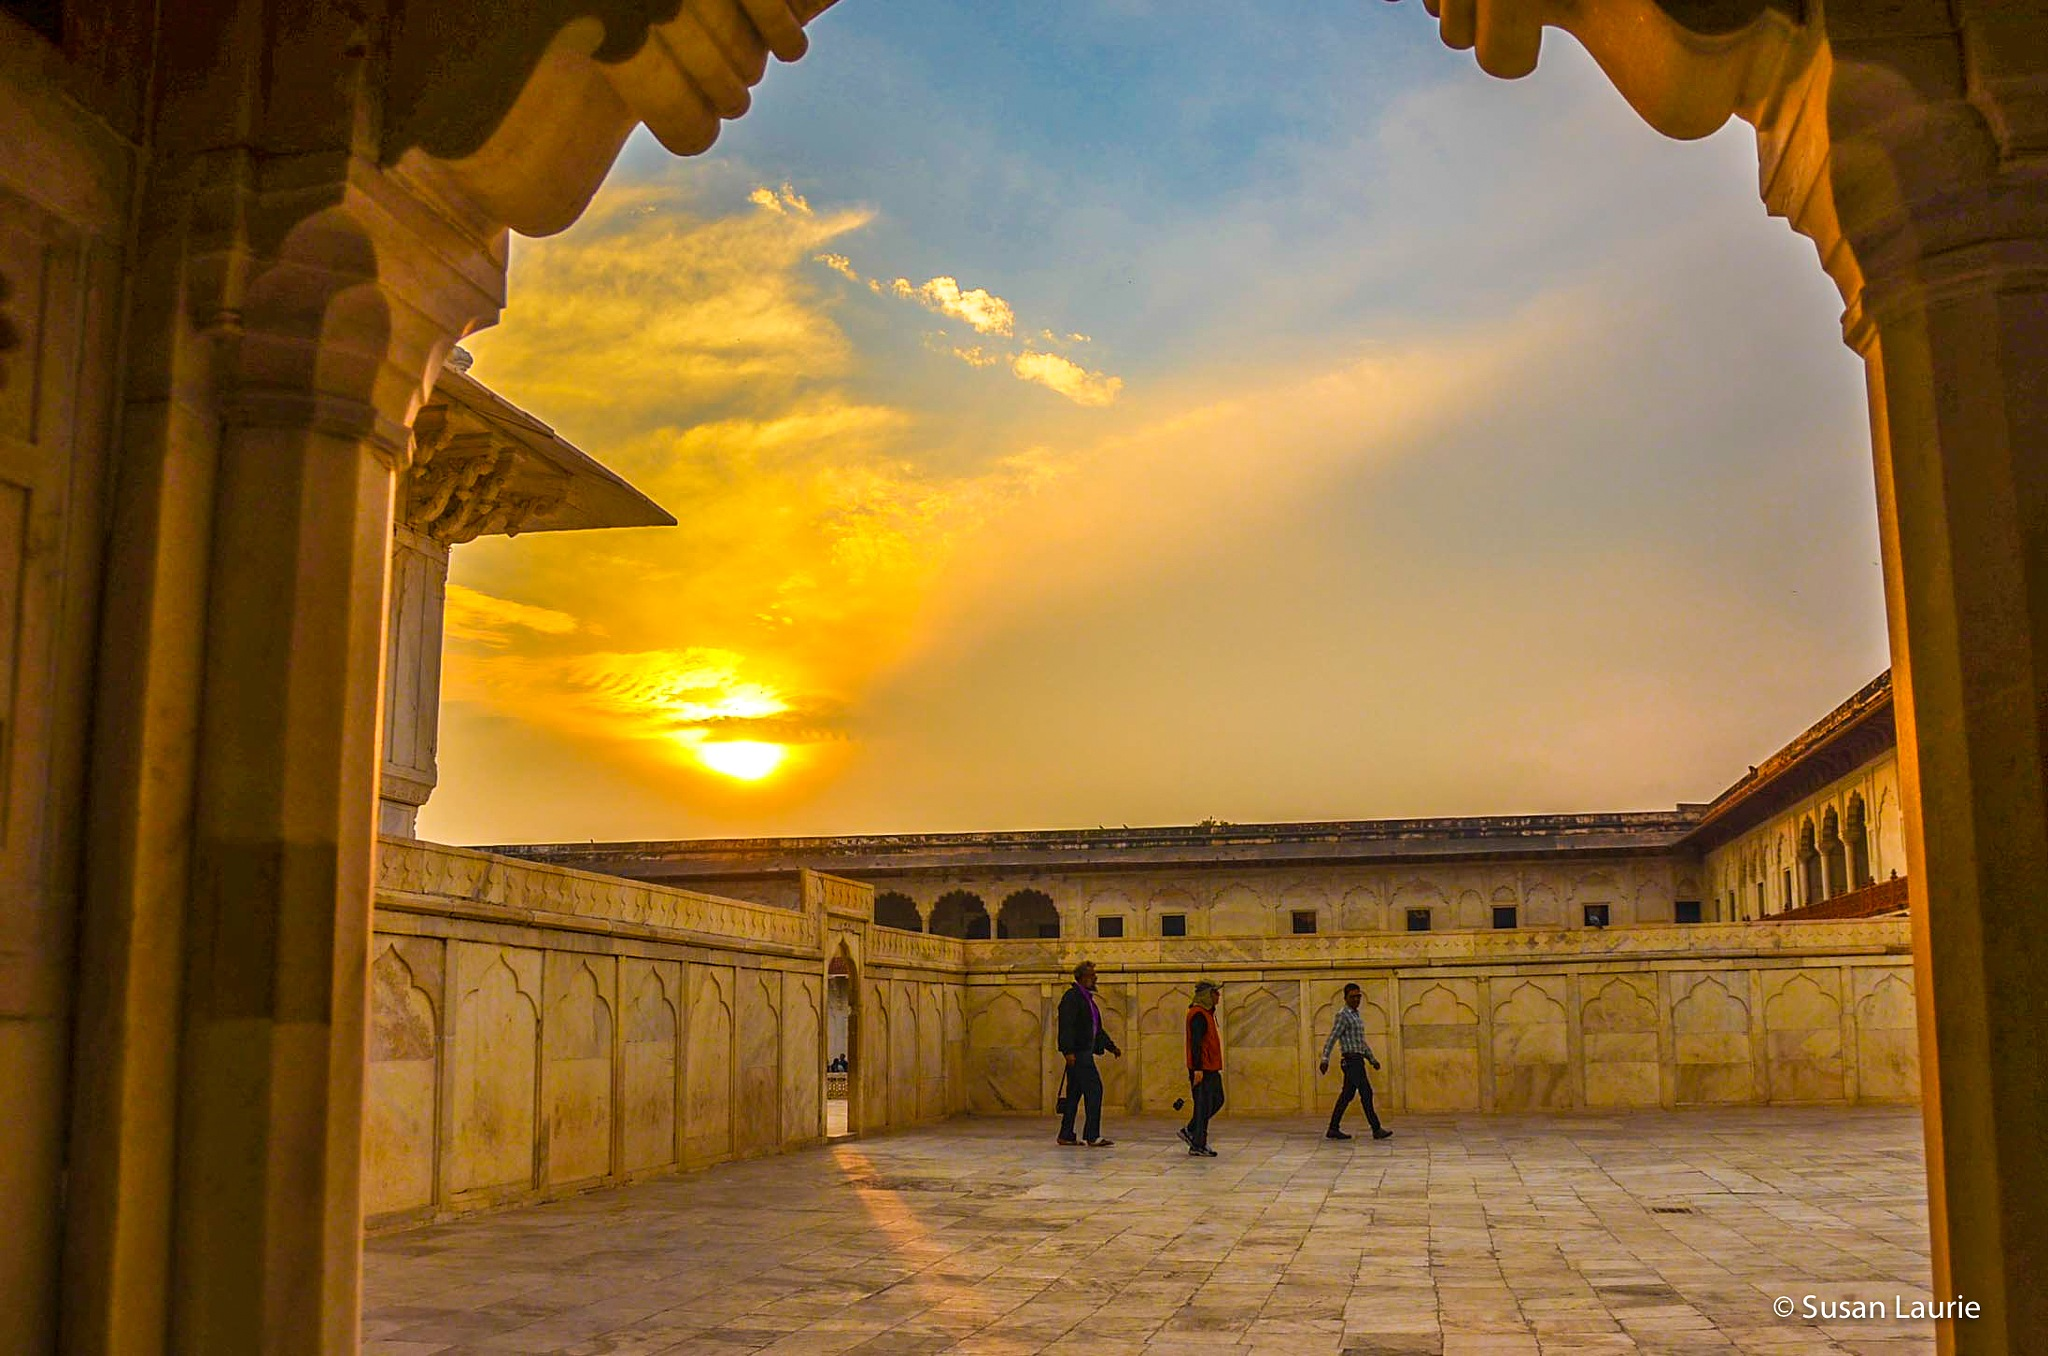 Sunset in Agra by Susan Laurie